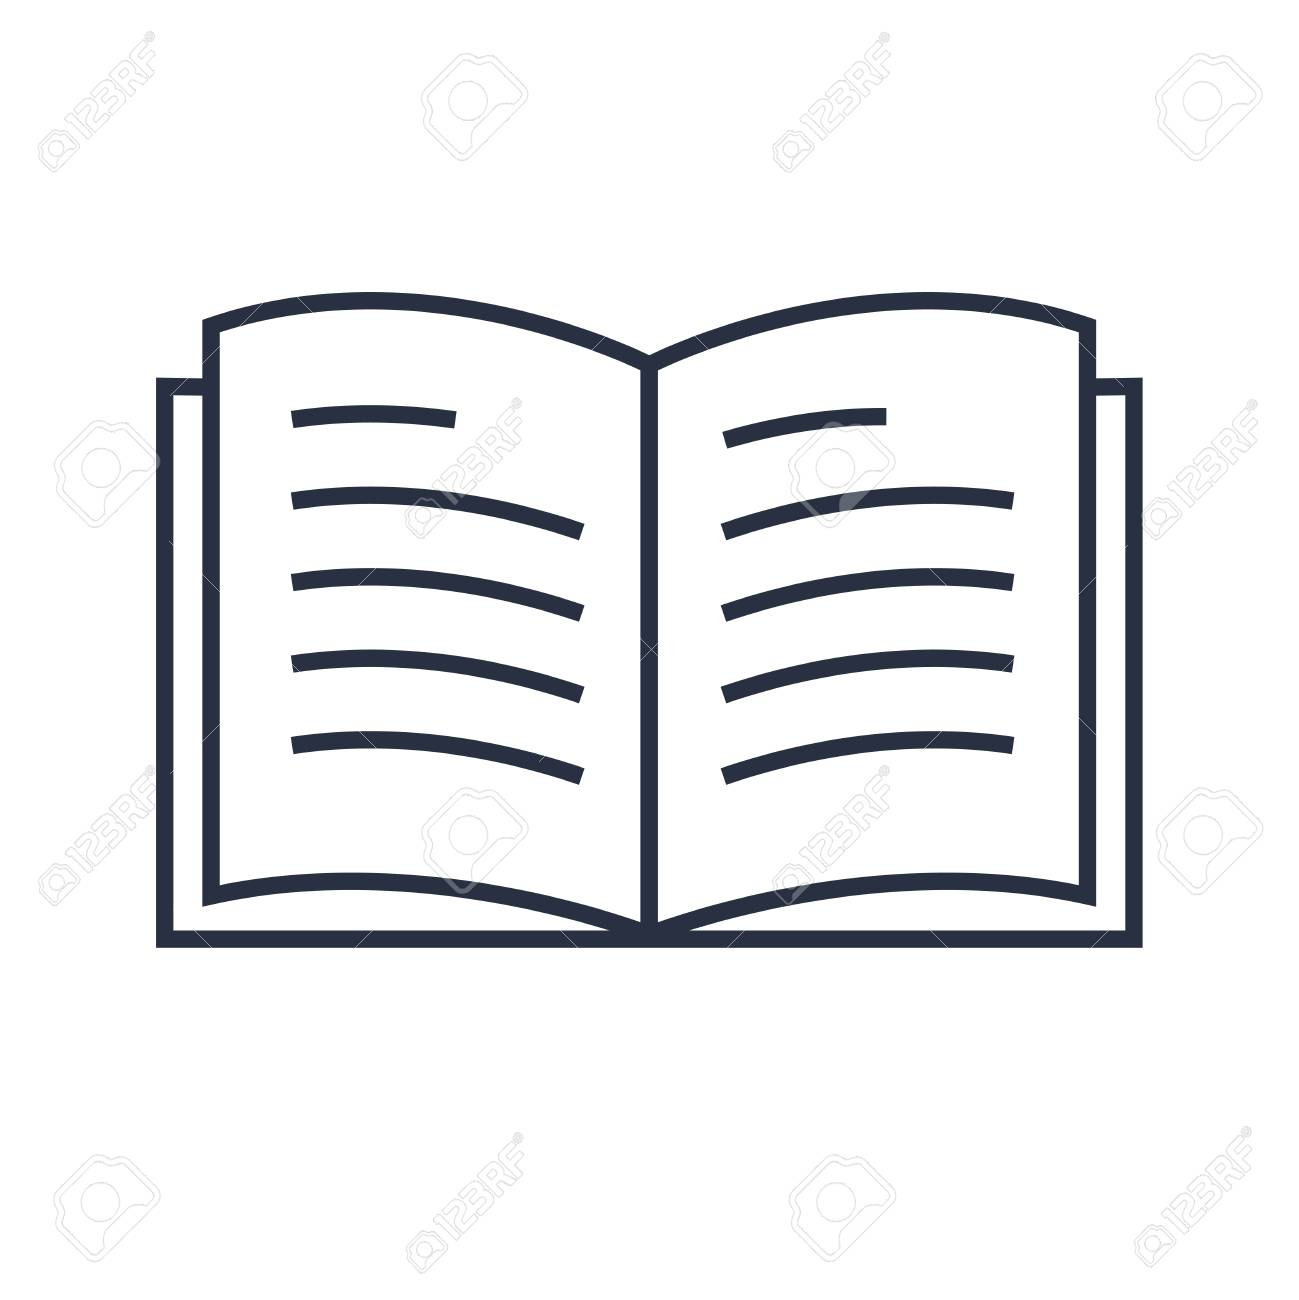 Book line icon vector. Minimalistic modern linear icon for education. Diary, book icon, concept for reading. Online reader sign. Simple study logo, library, magazine. Textbook isolated on white - 125733805